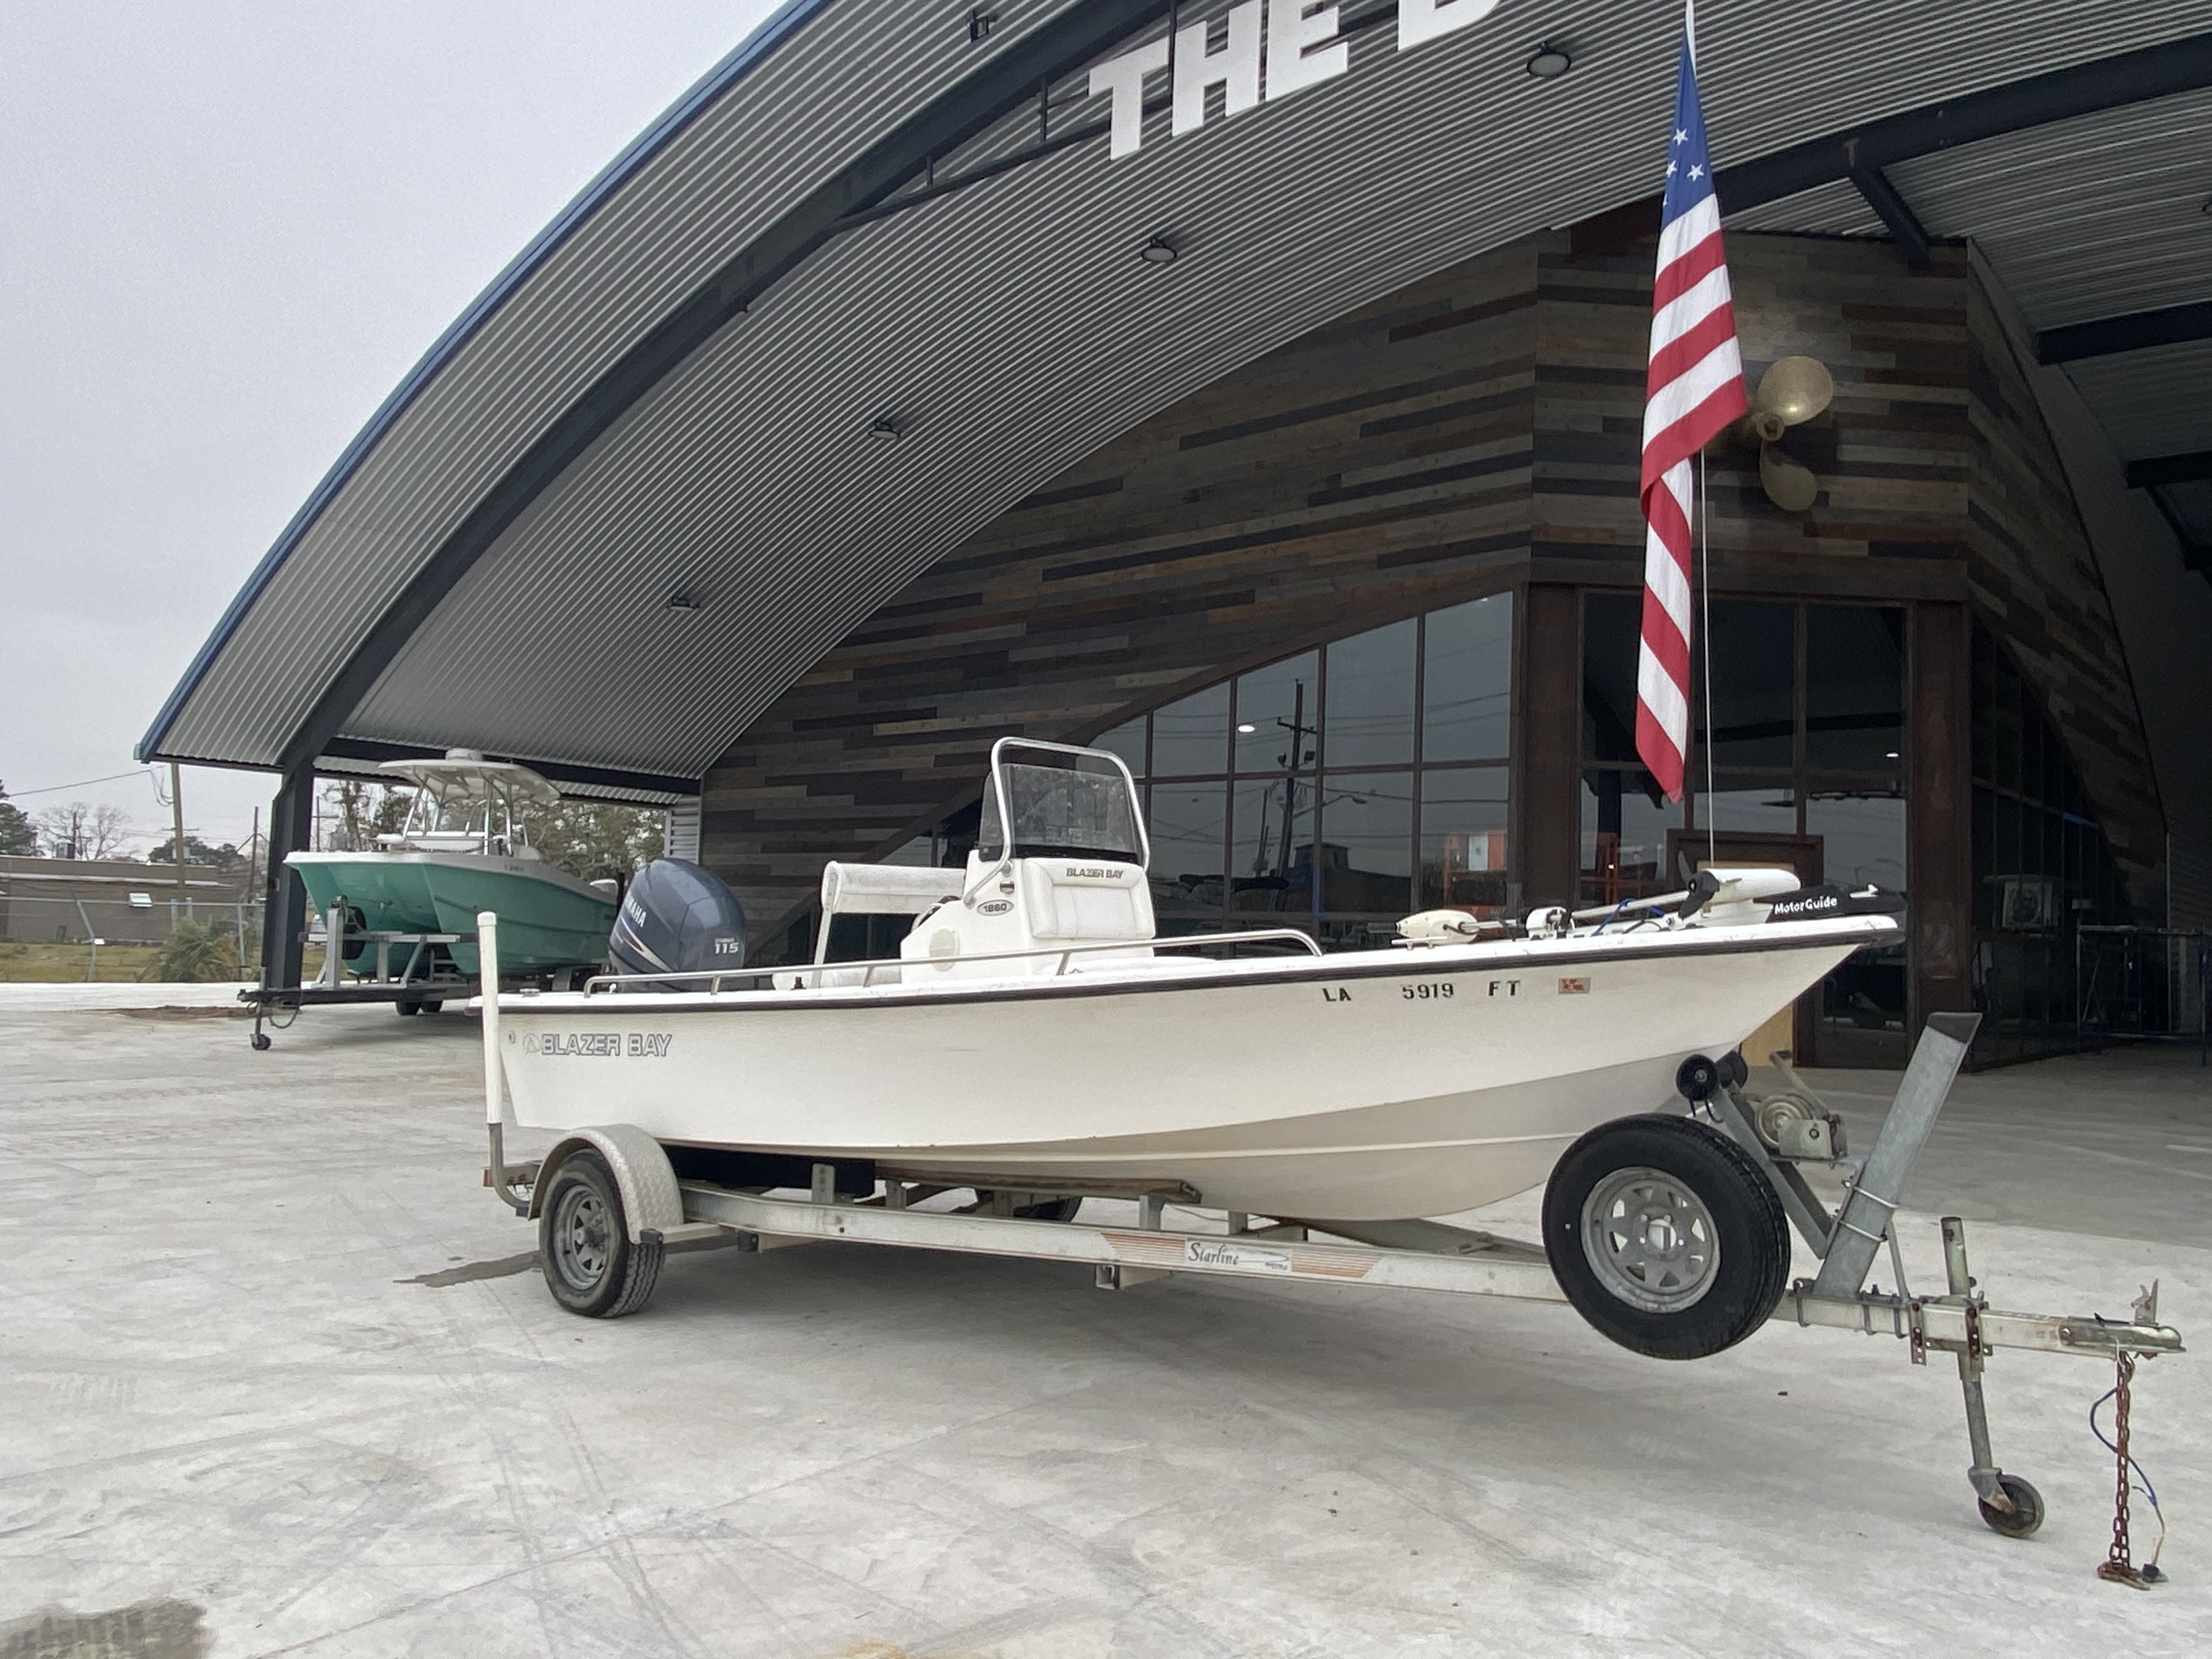 2008 Blazer boat for sale, model of the boat is 1860 CC & Image # 7 of 15